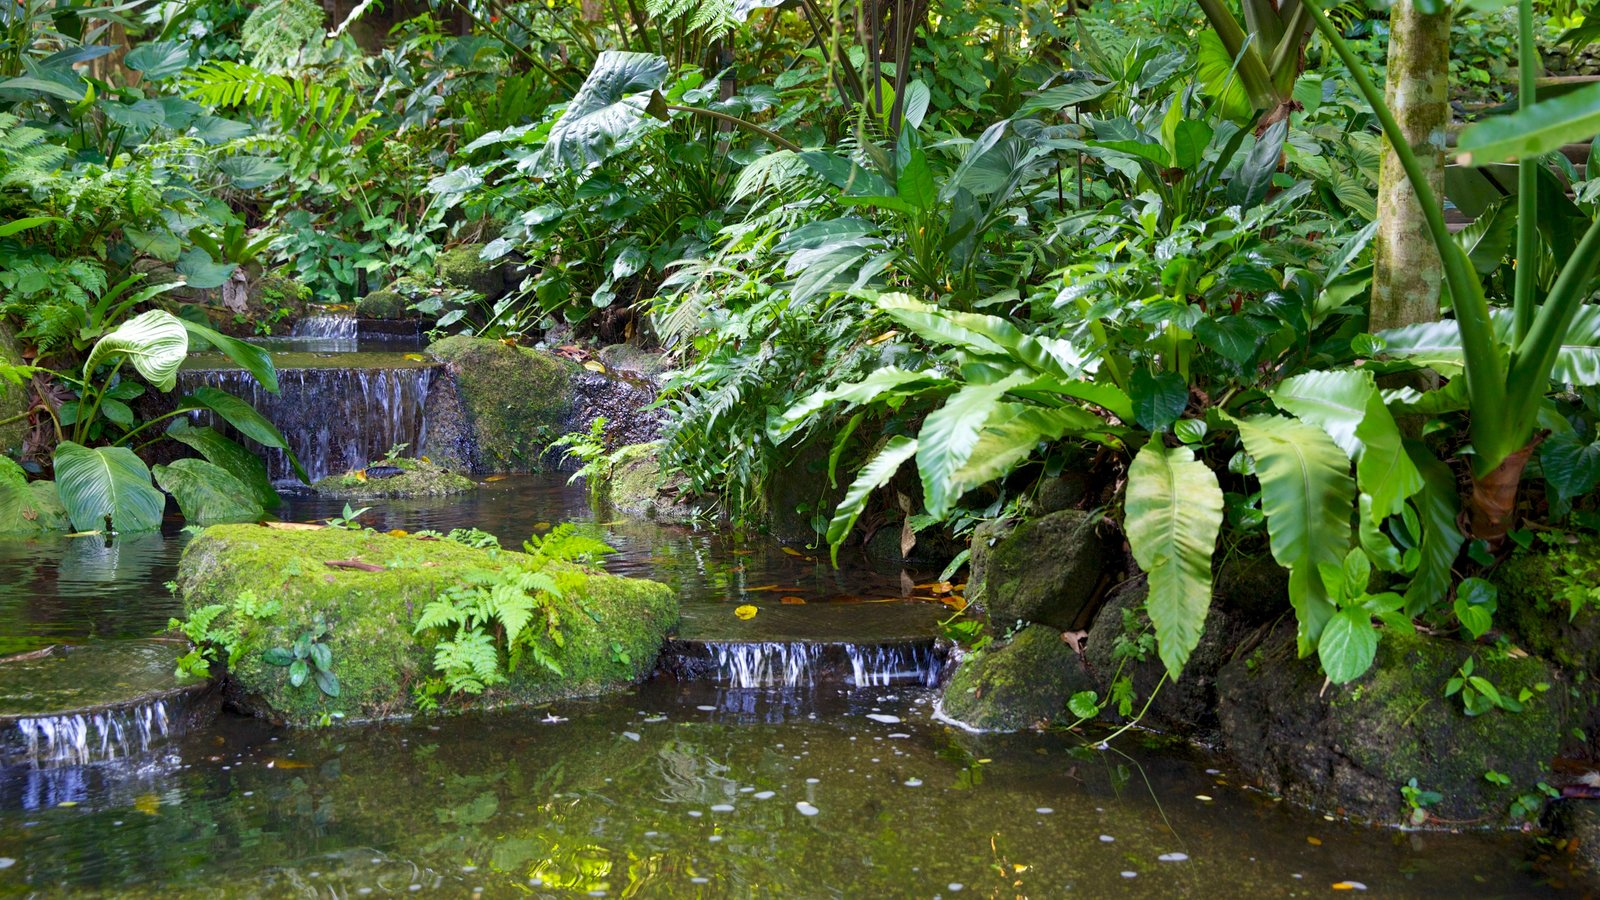 Gardens parks pictures view images of malaysia for Garden pond design malaysia